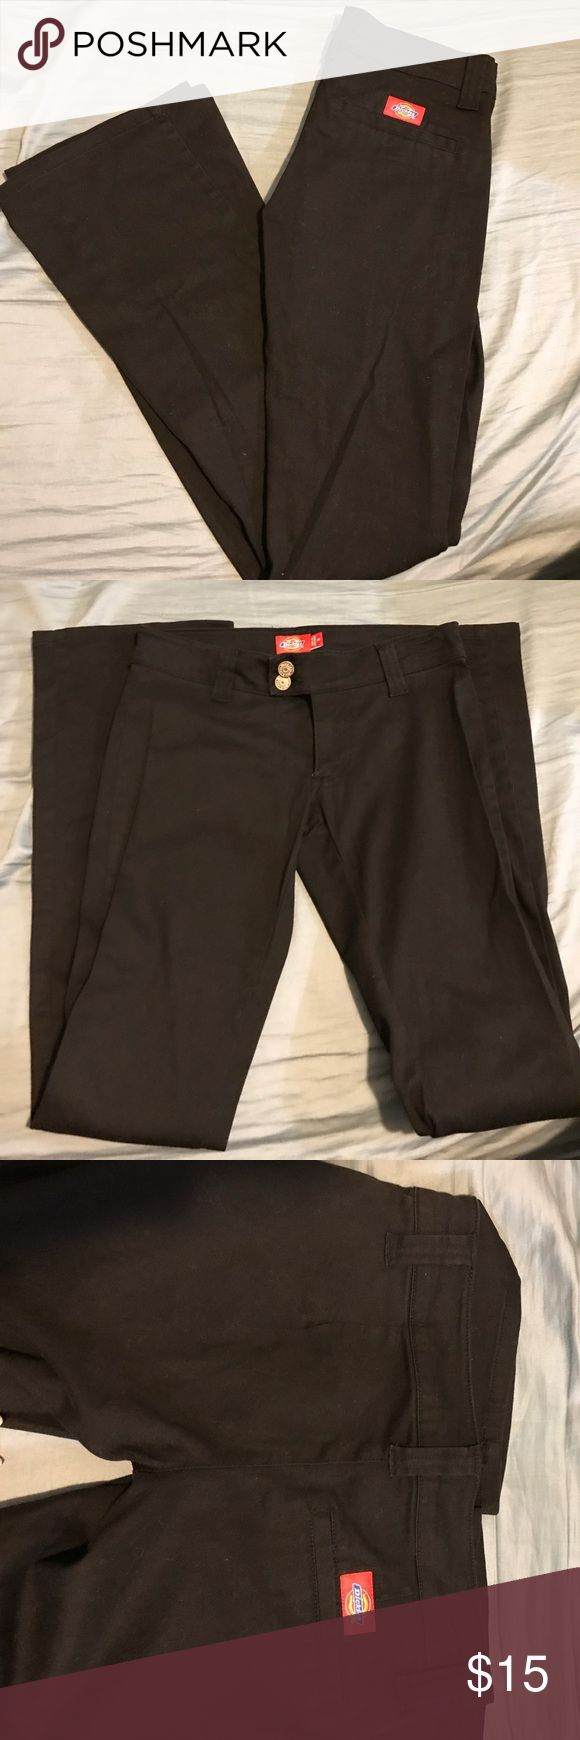 🎈3 for $25🎈Dickies pant Worn less than 5x/bootcut/ 2 front pockets and double front buttons/ one fake pocket in the back Dickies Pants Boot Cut & Flare